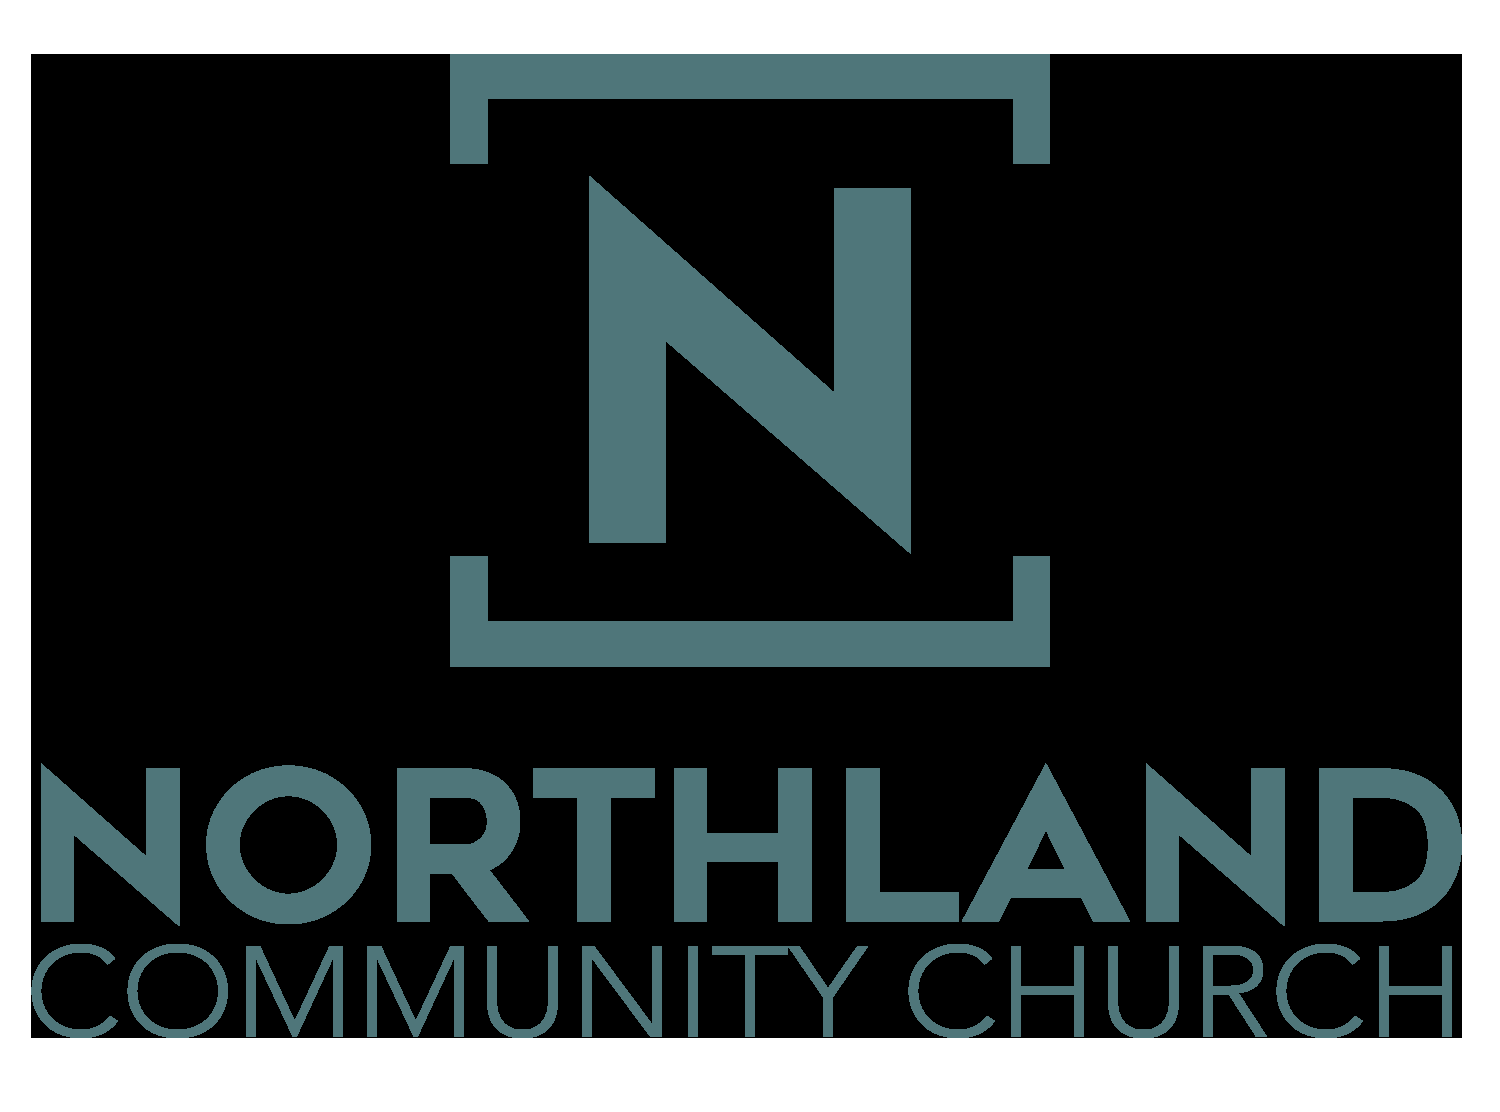 Northland Community Church